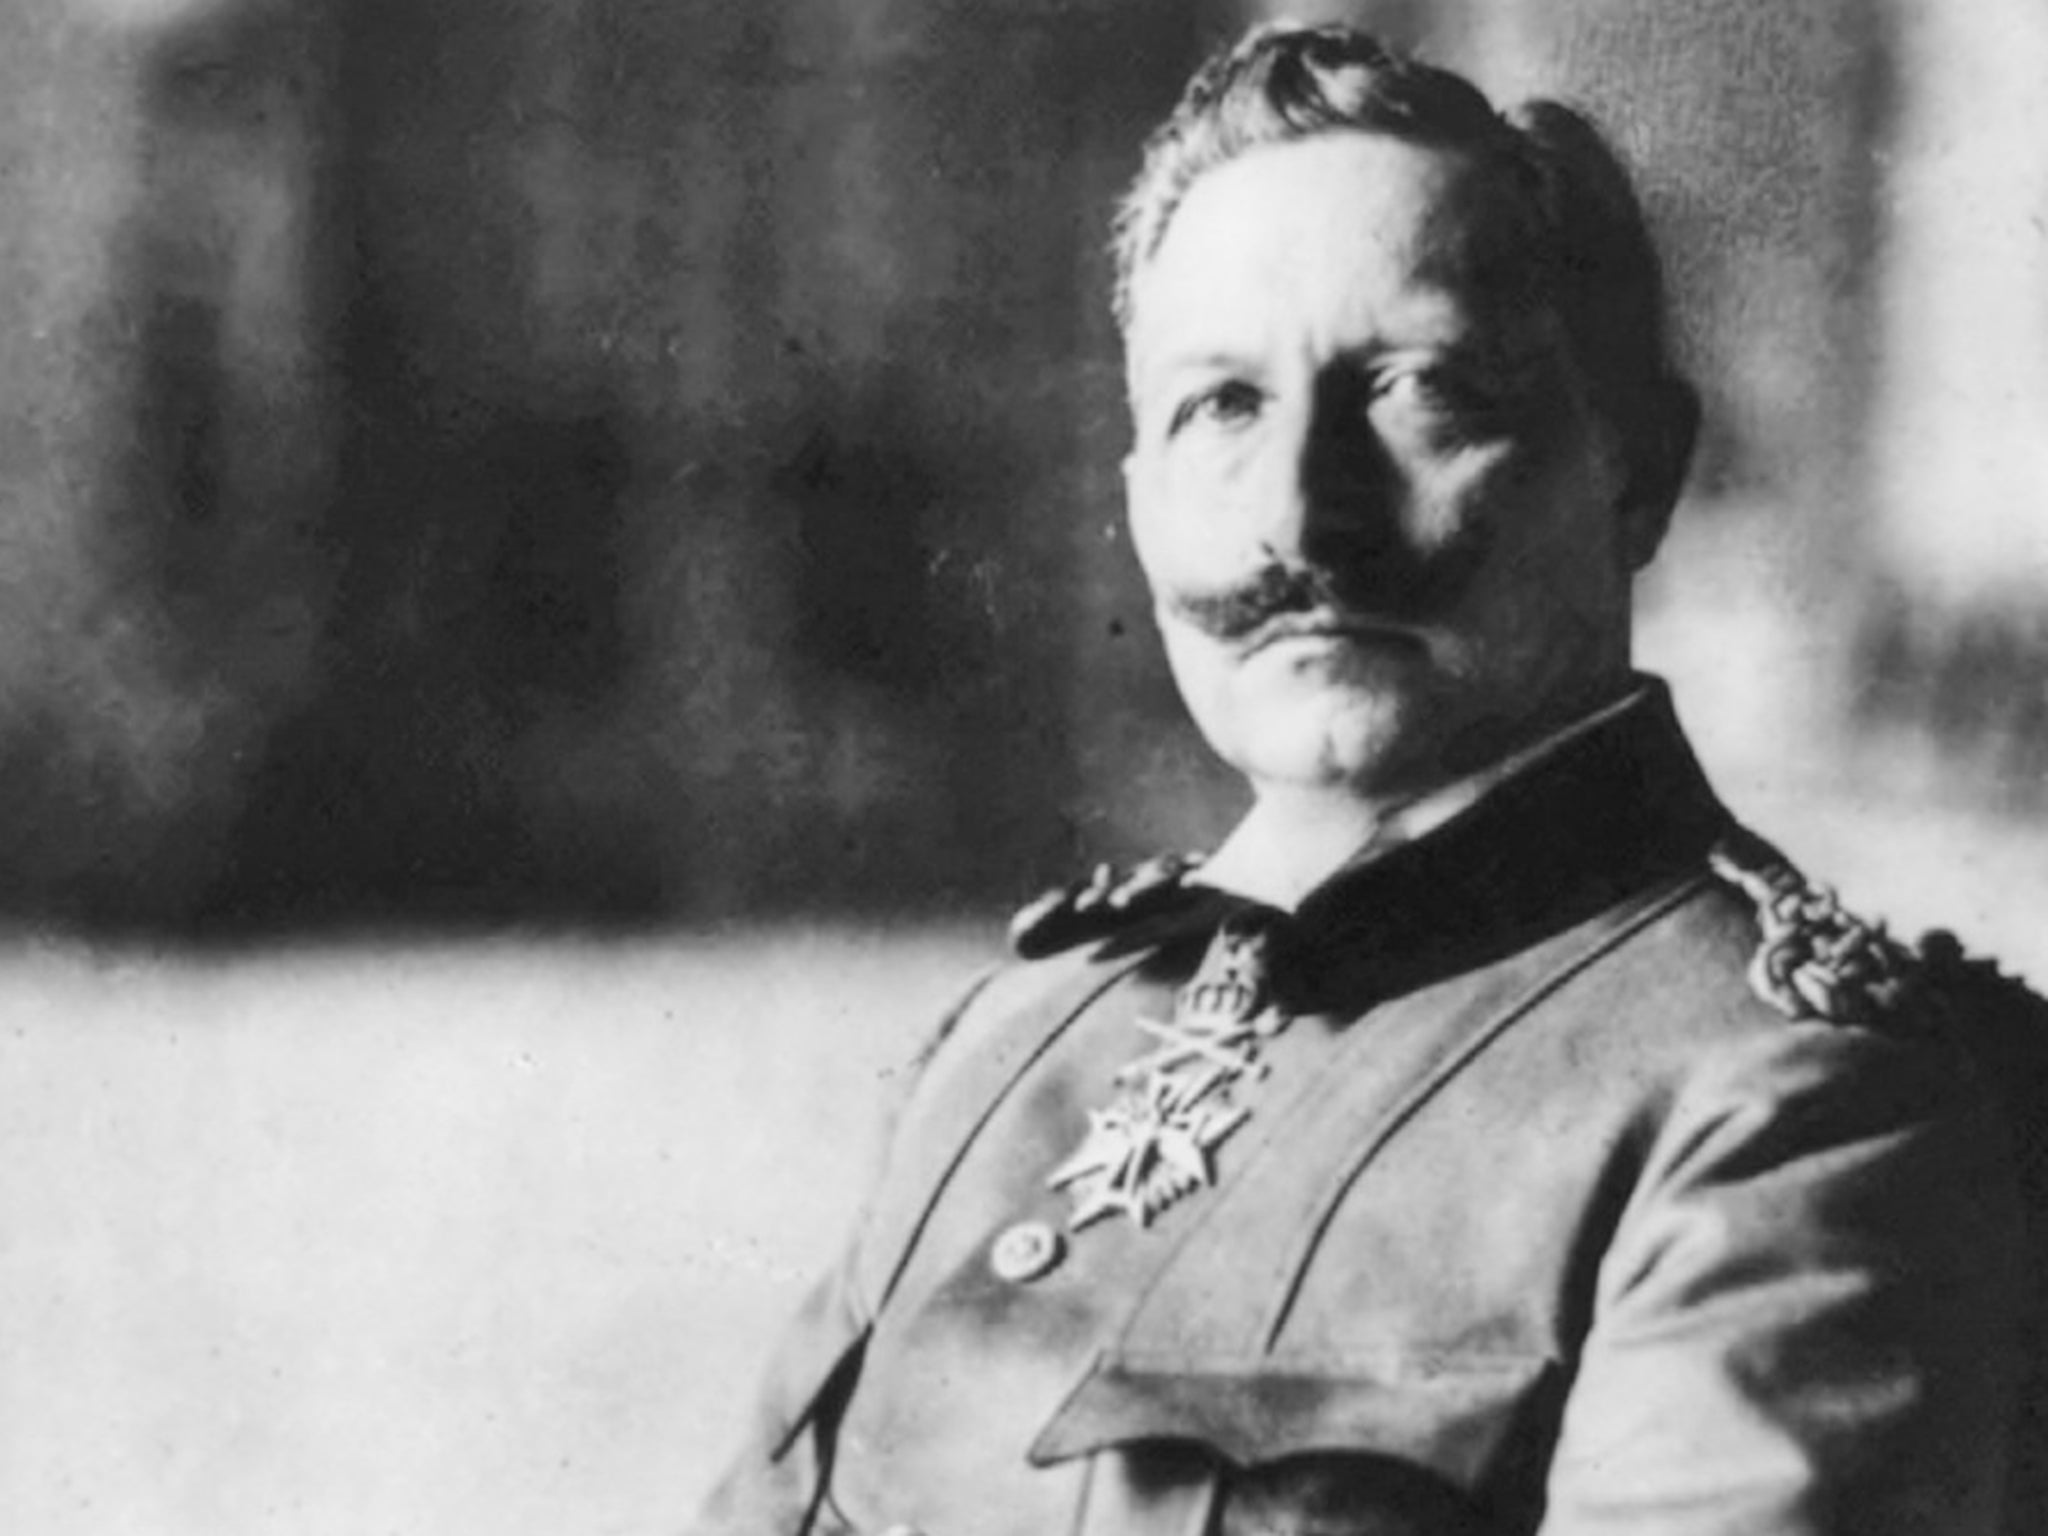 Britain tried to kill Kaiser Wilhelm II in 1918 with secret RAF bombing raid, reveals archives